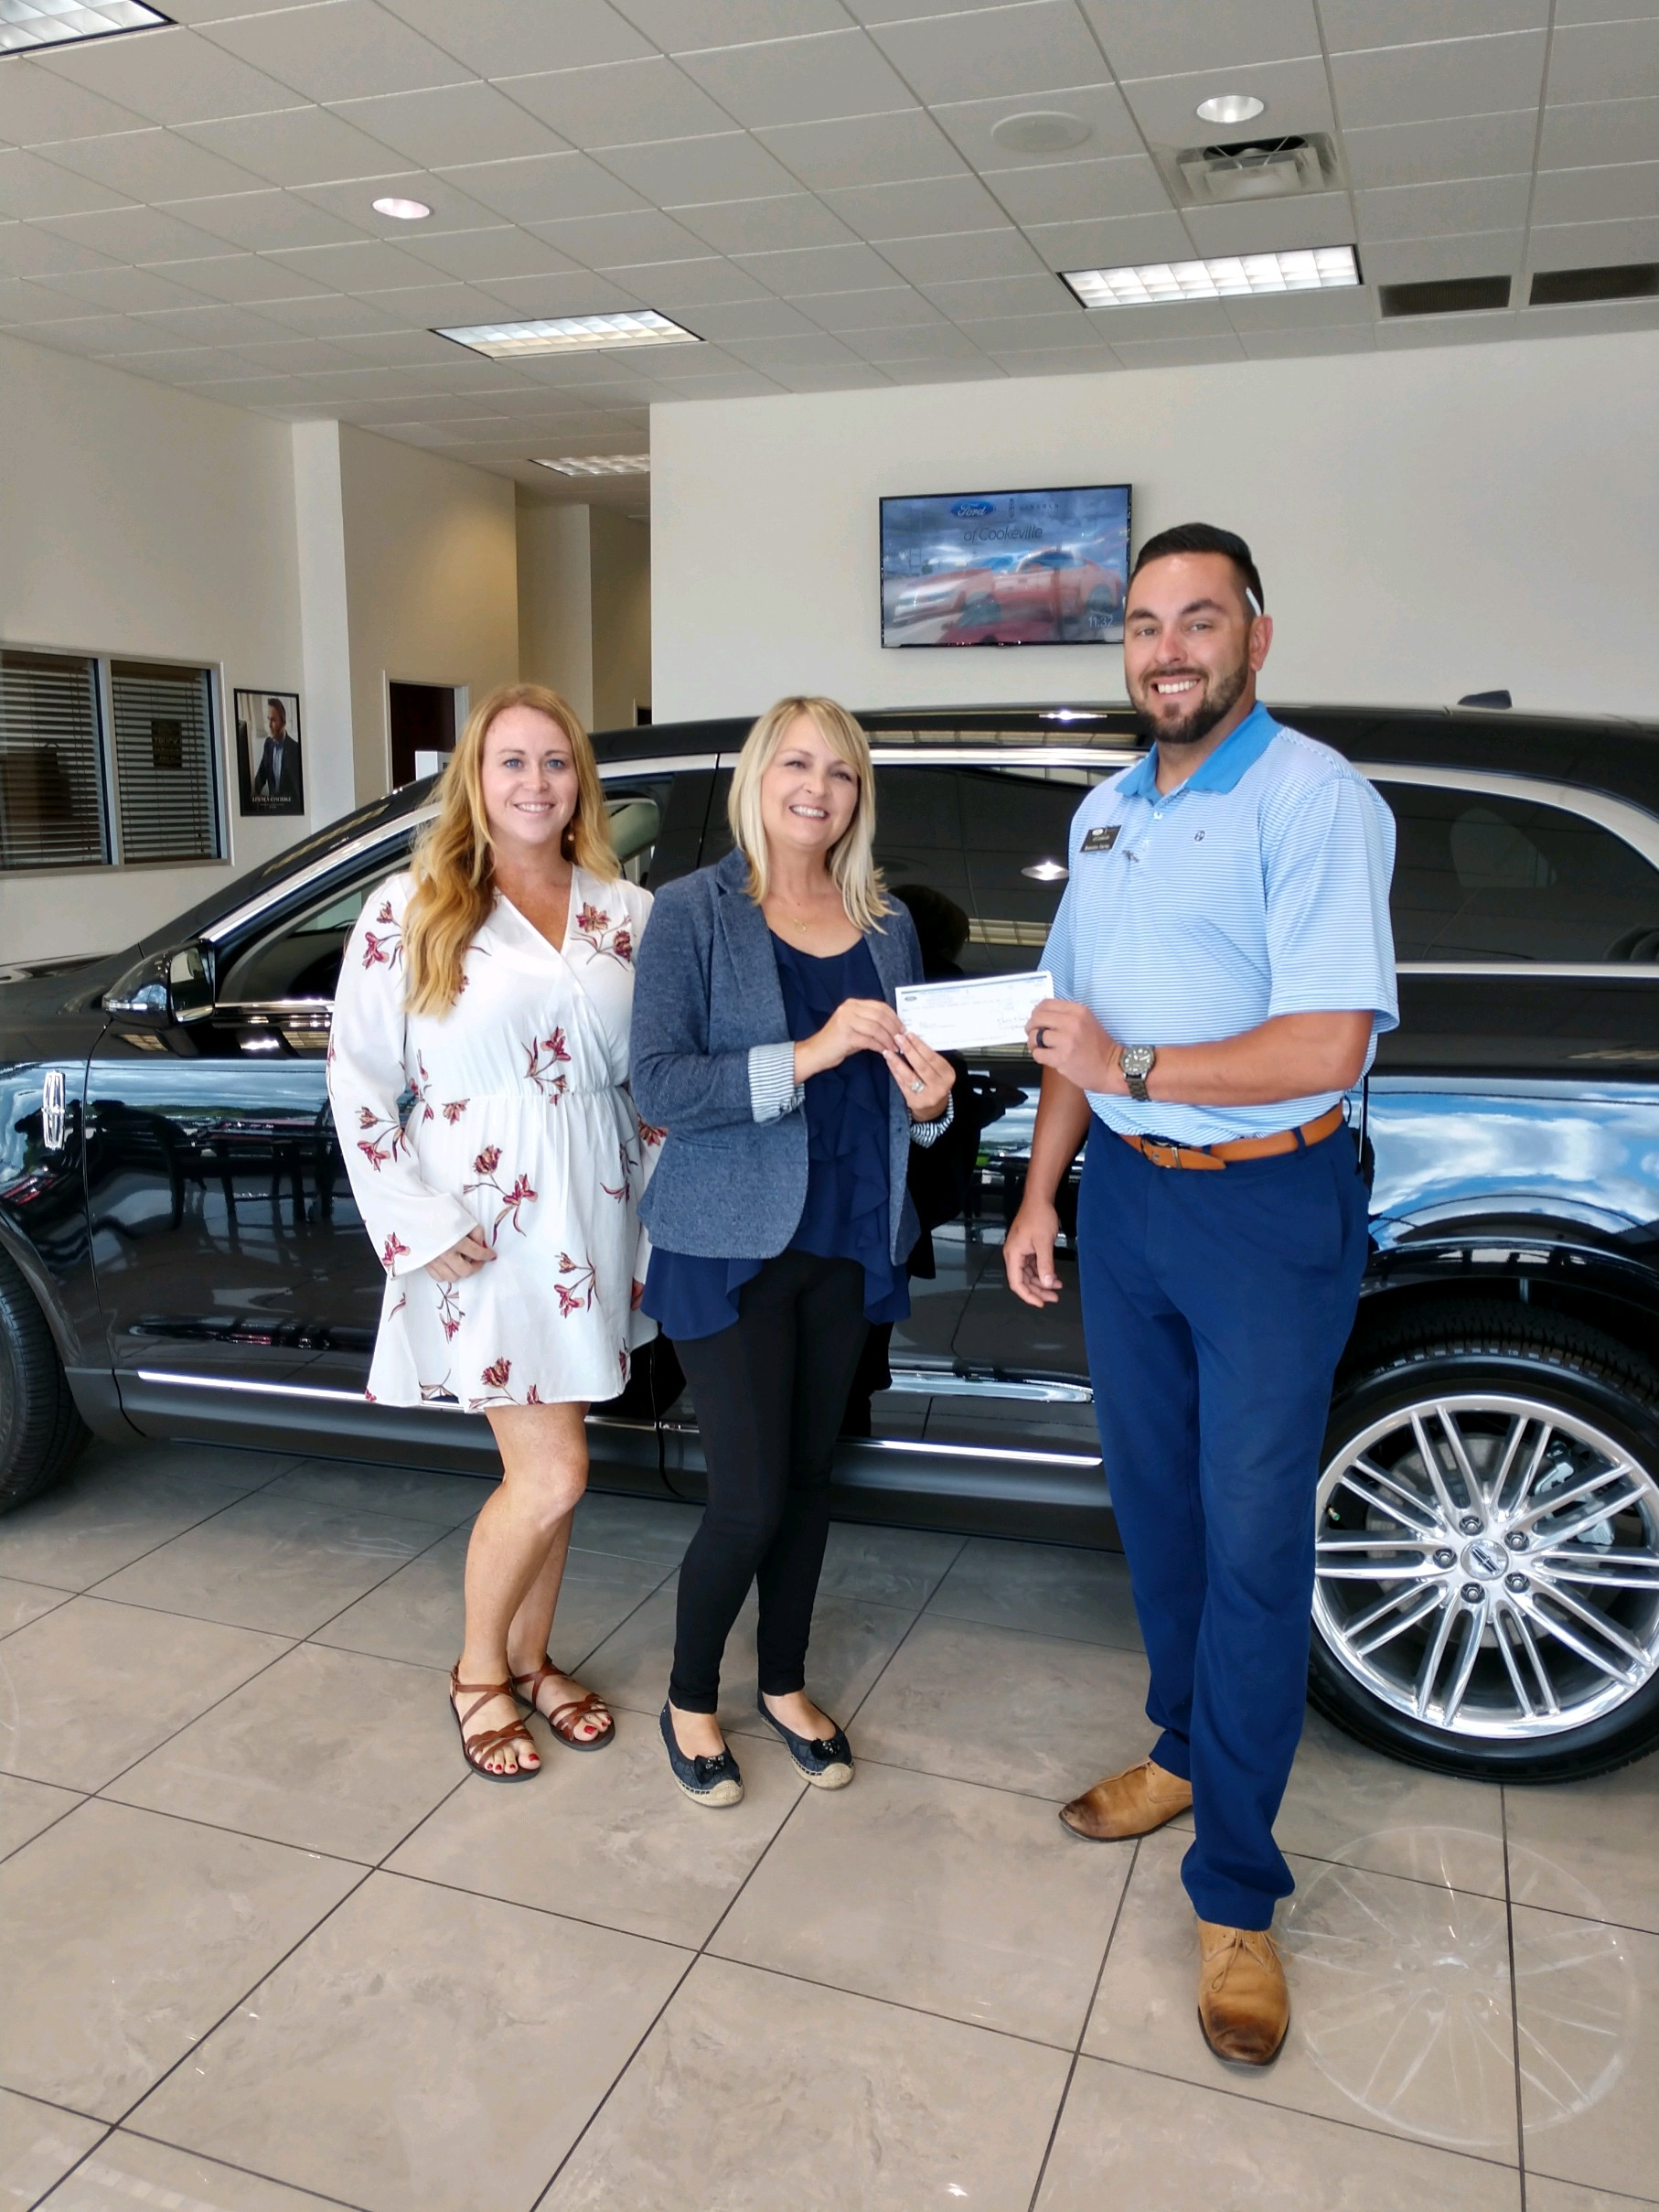 Manager with wcte celeste flatt bennett corporate sales manager wcte brandon farley marketing and public relations ford lincoln of cookeville